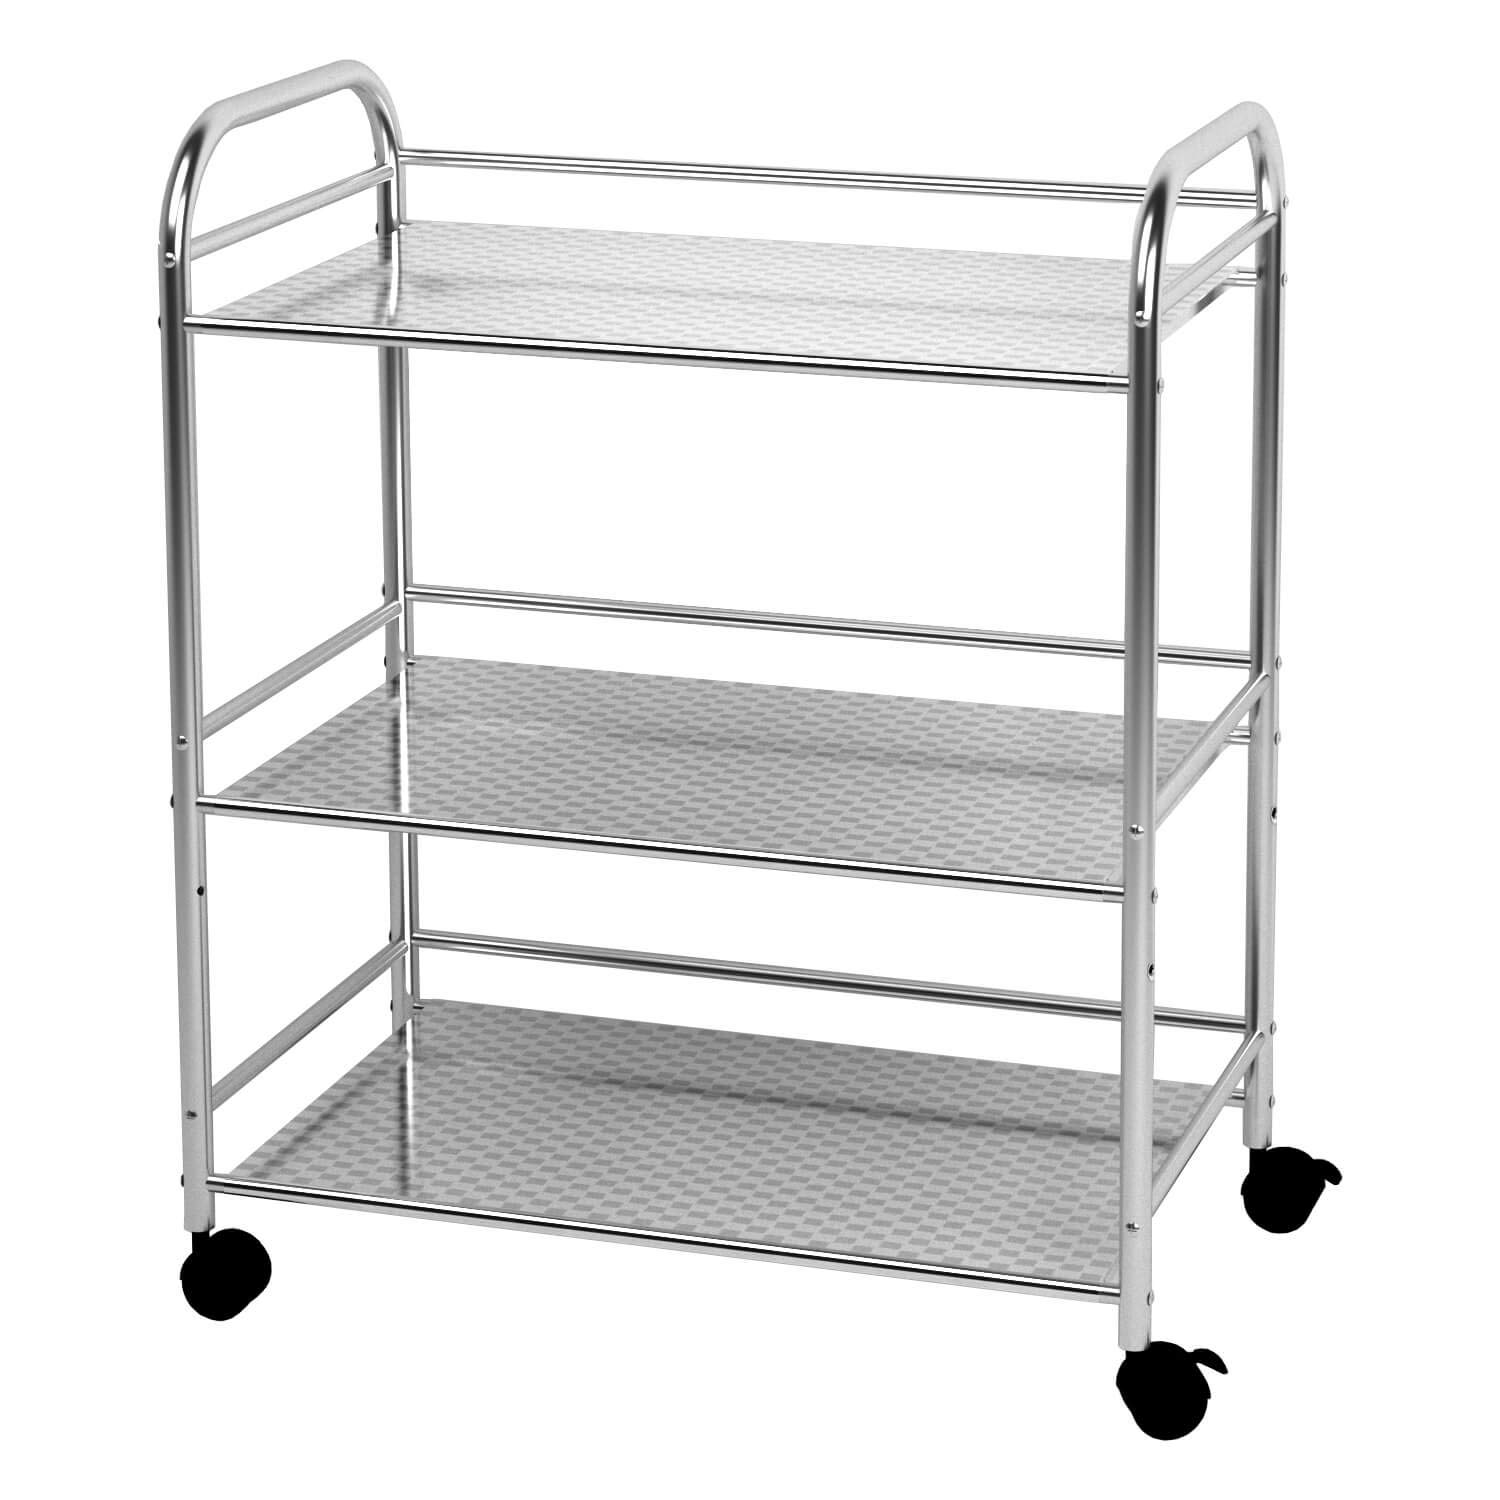 YKEASE 3-Shelf Kitchen Shelving Units Adjustable Rolling Cart with Shelves Stainless Steel Durable Microwave Bakers Rack Bathroom Garage Storage Shelving on Wheels Size 23.6x13.8x29.5''(LxWxH)